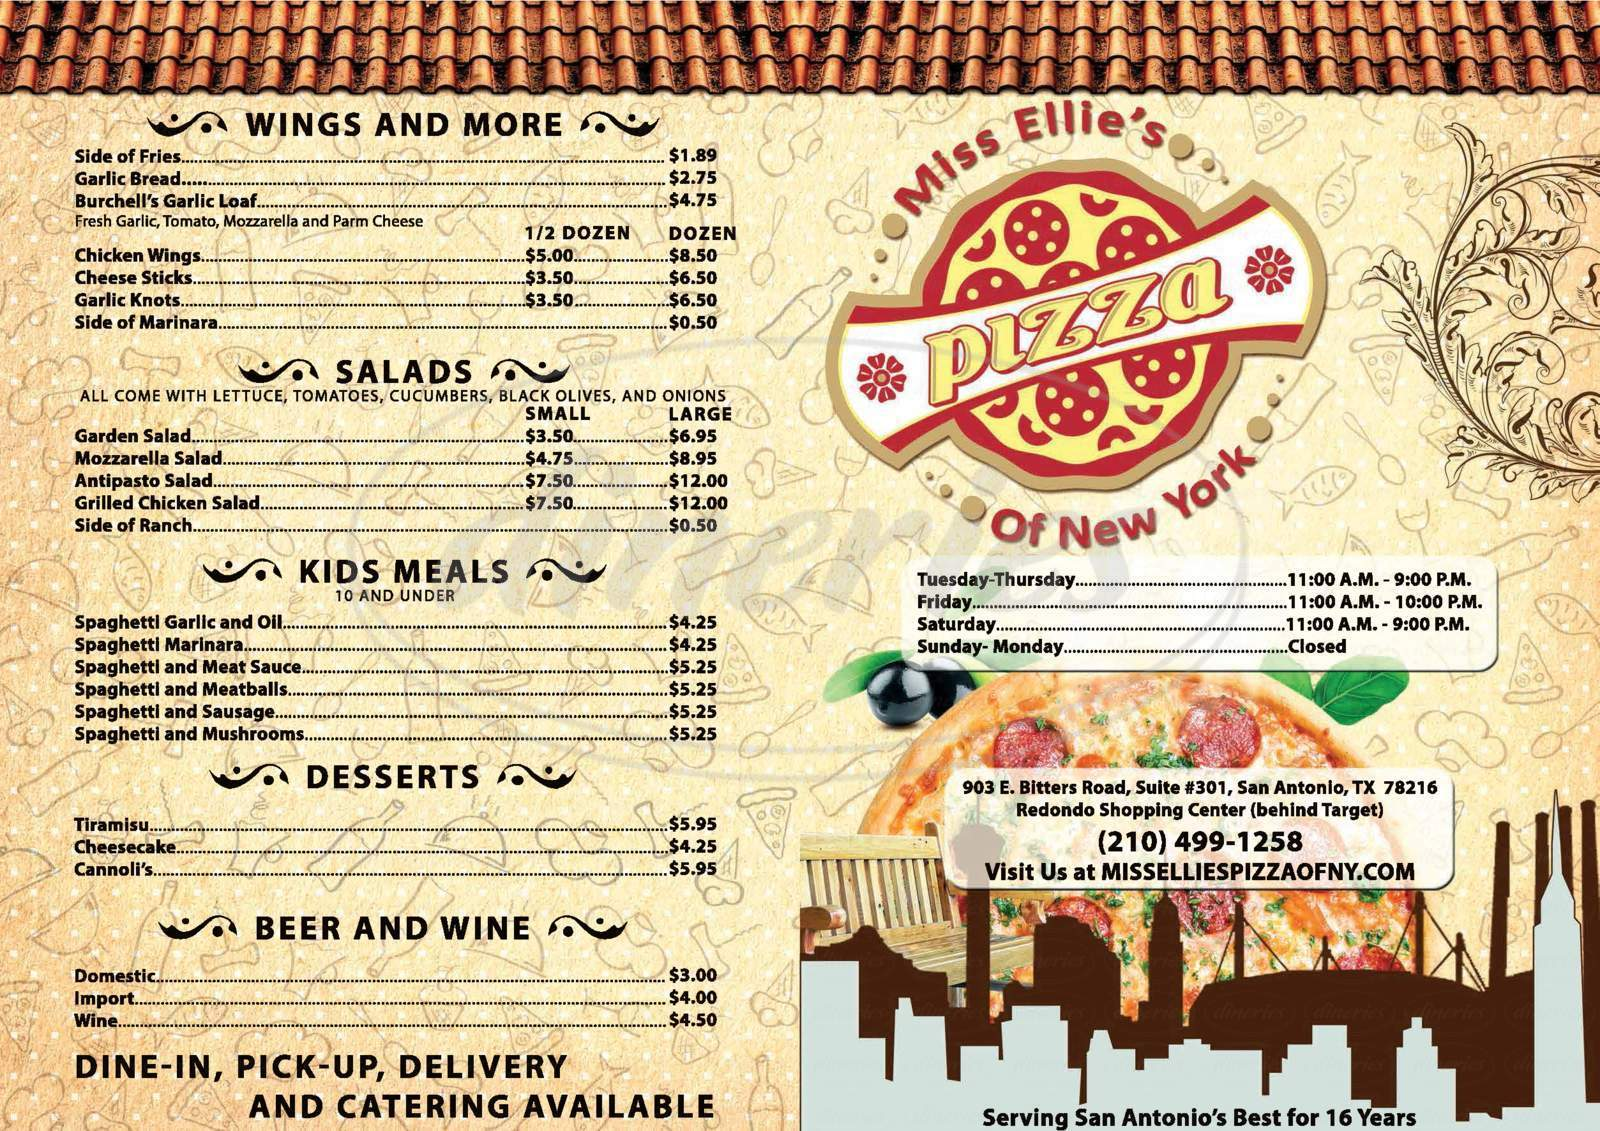 menu for Miss Ellie's Pizza